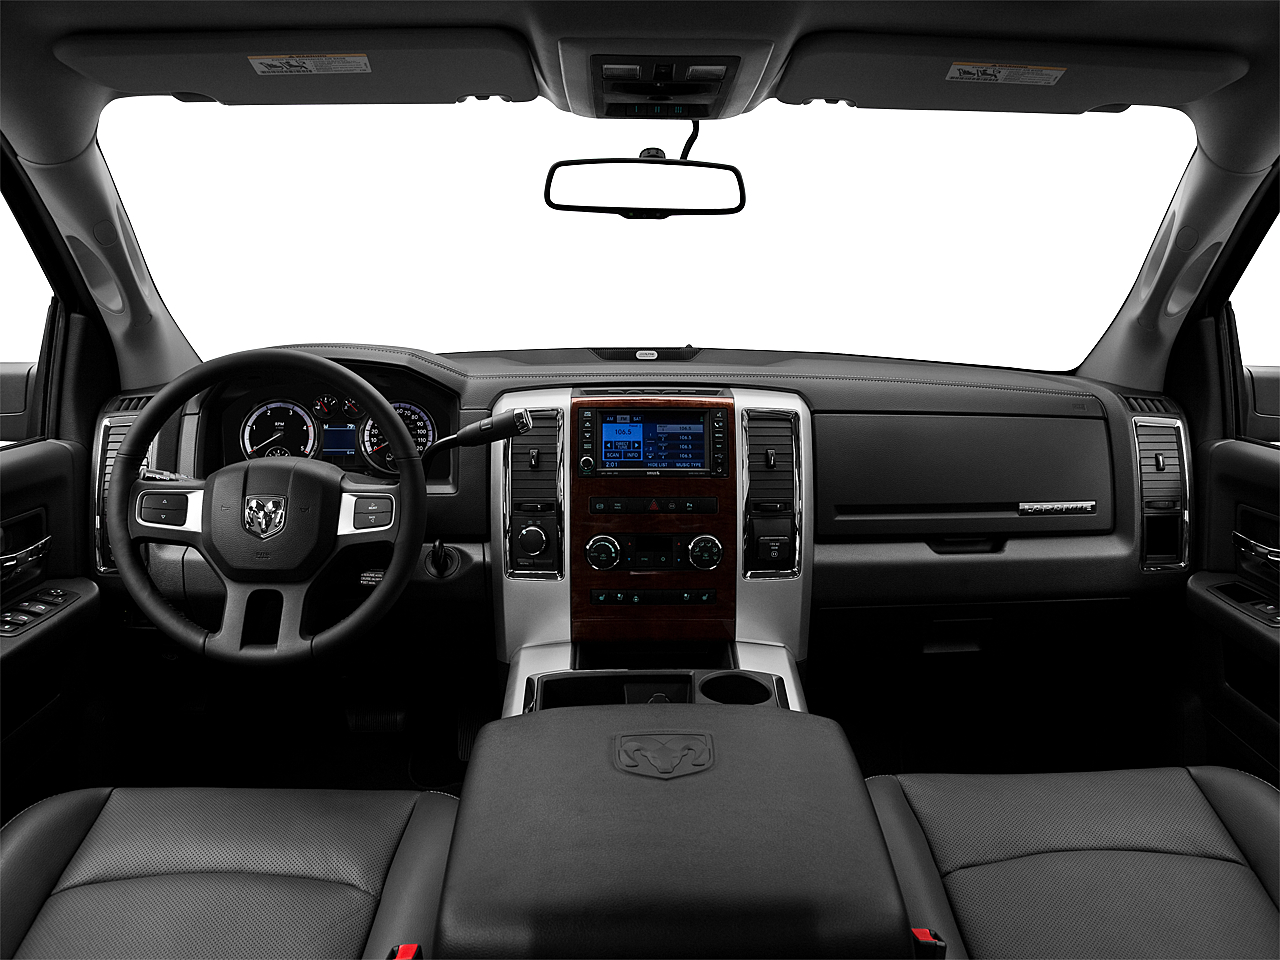 2011 Ram Trucks Ram 3500 Laramie, centered wide dash shot